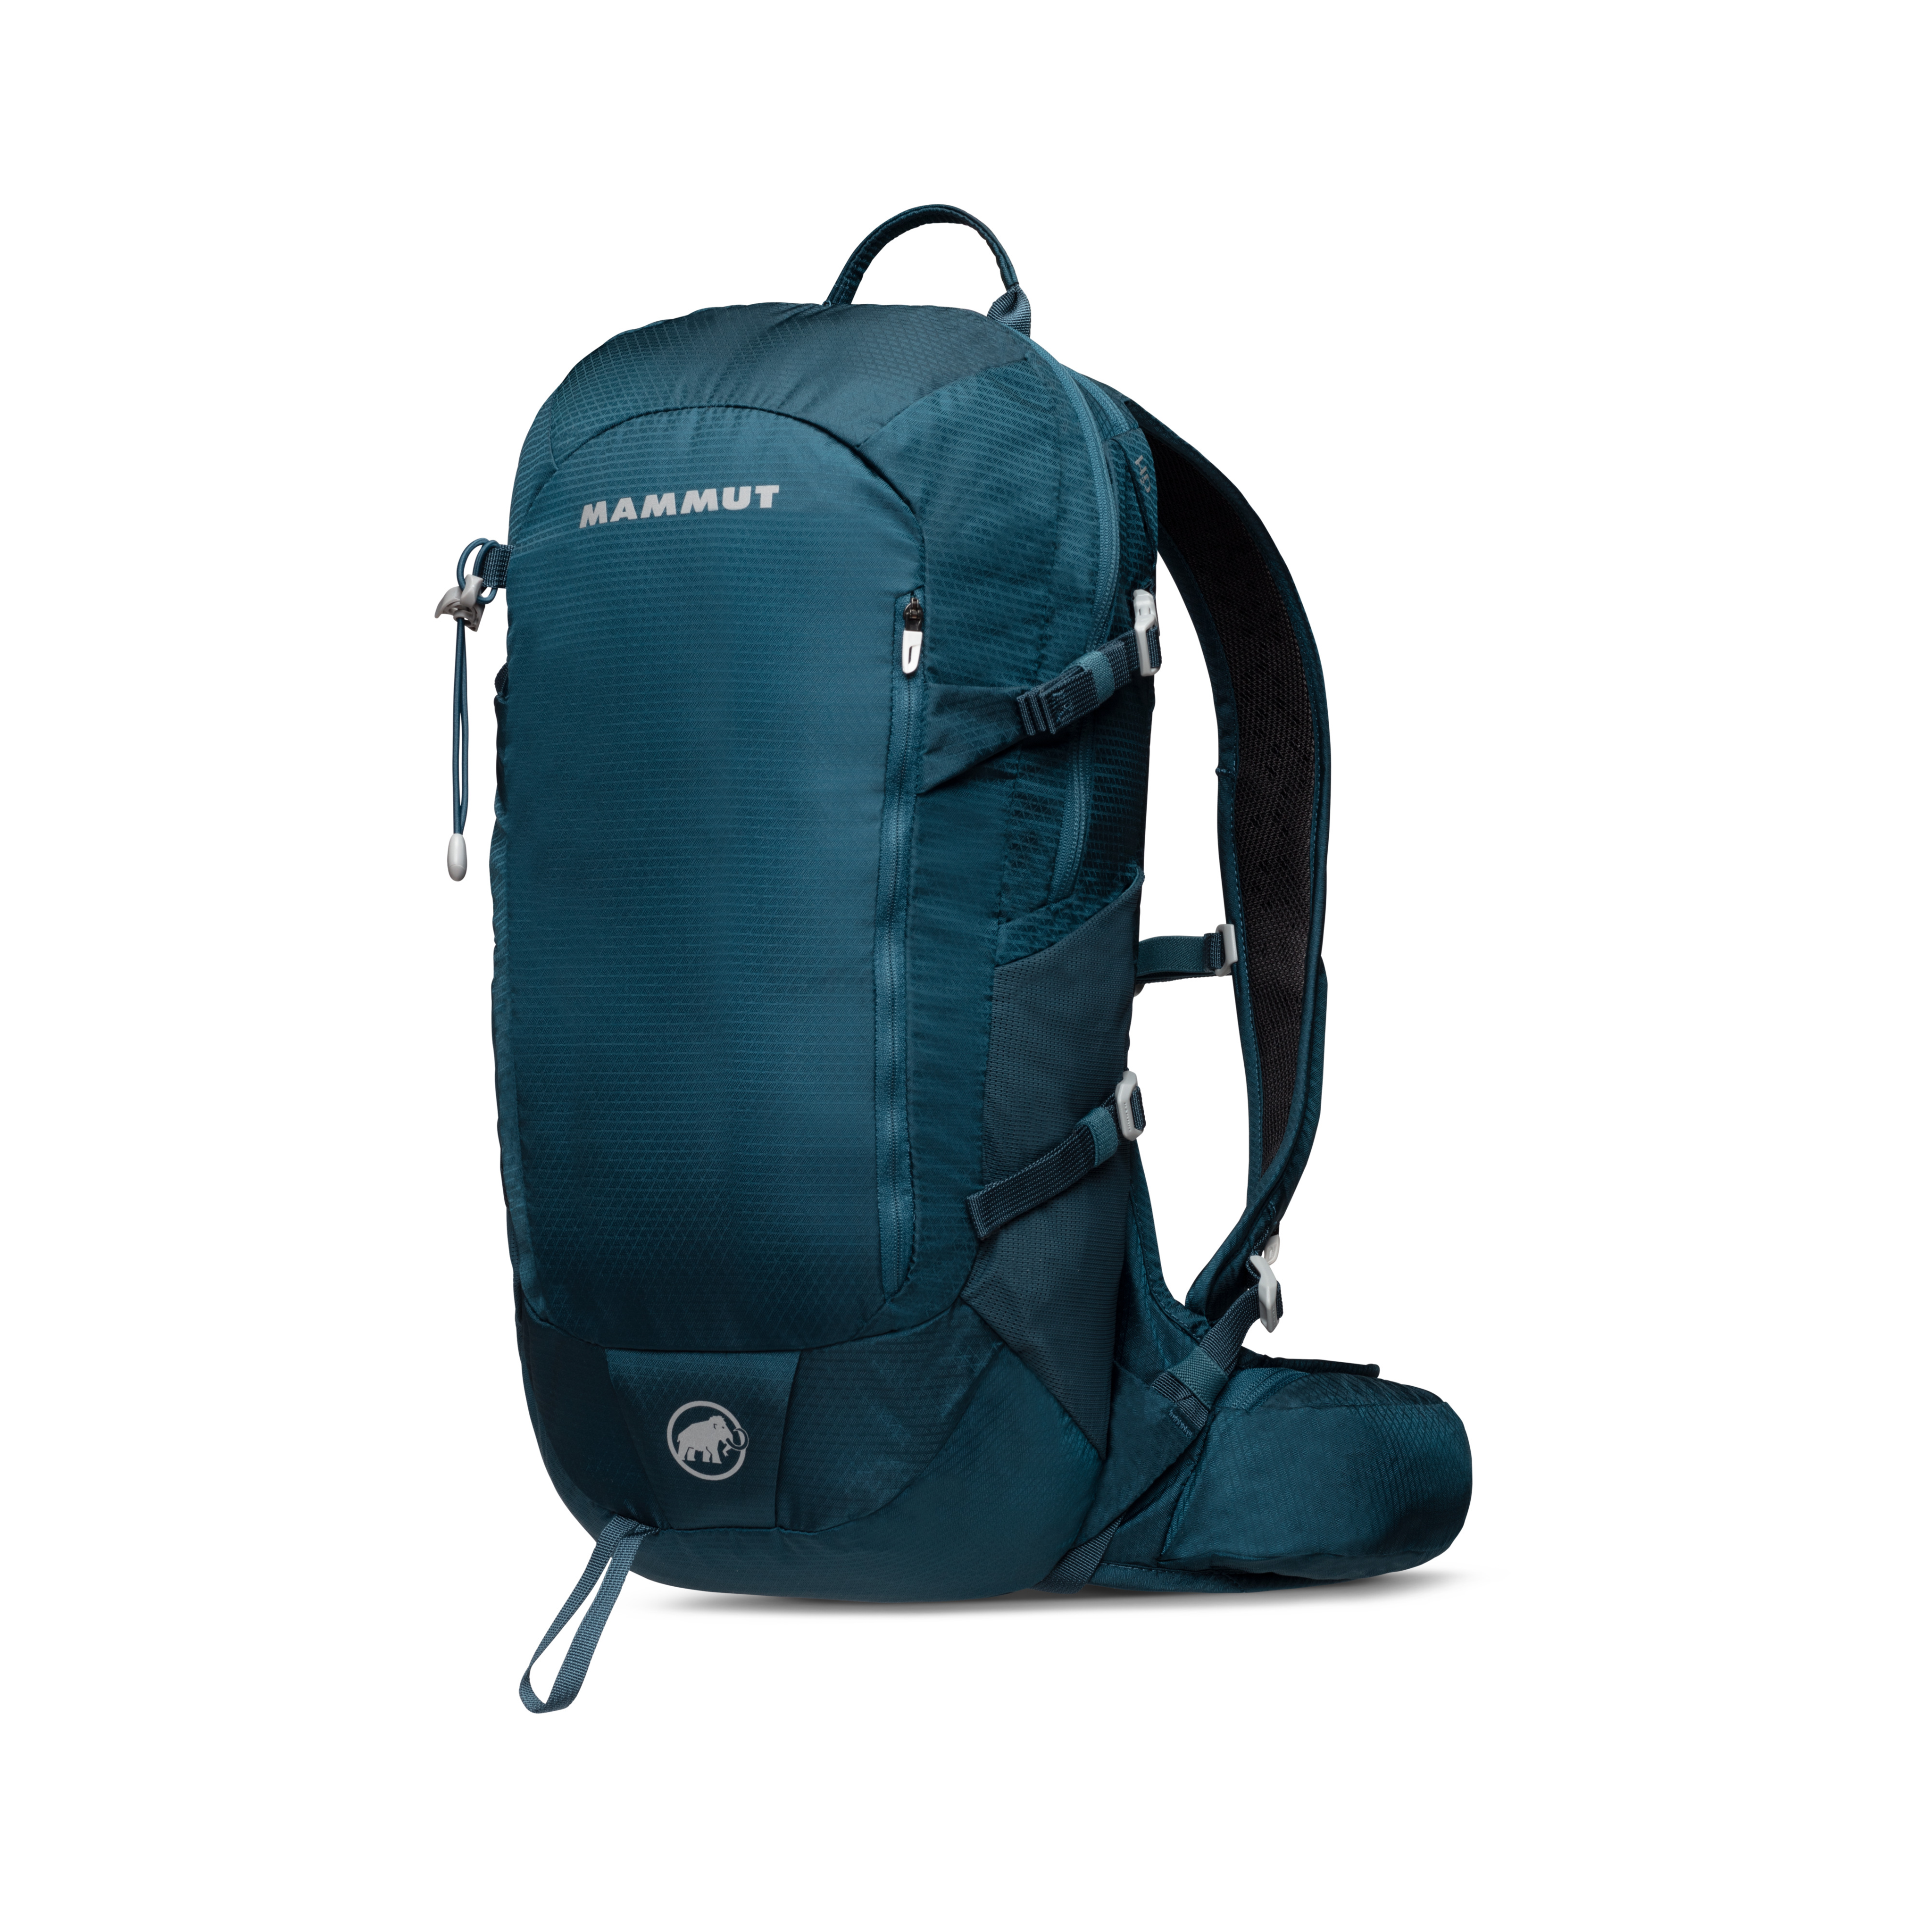 Lithium Speed 15 - 15 L, jay product image